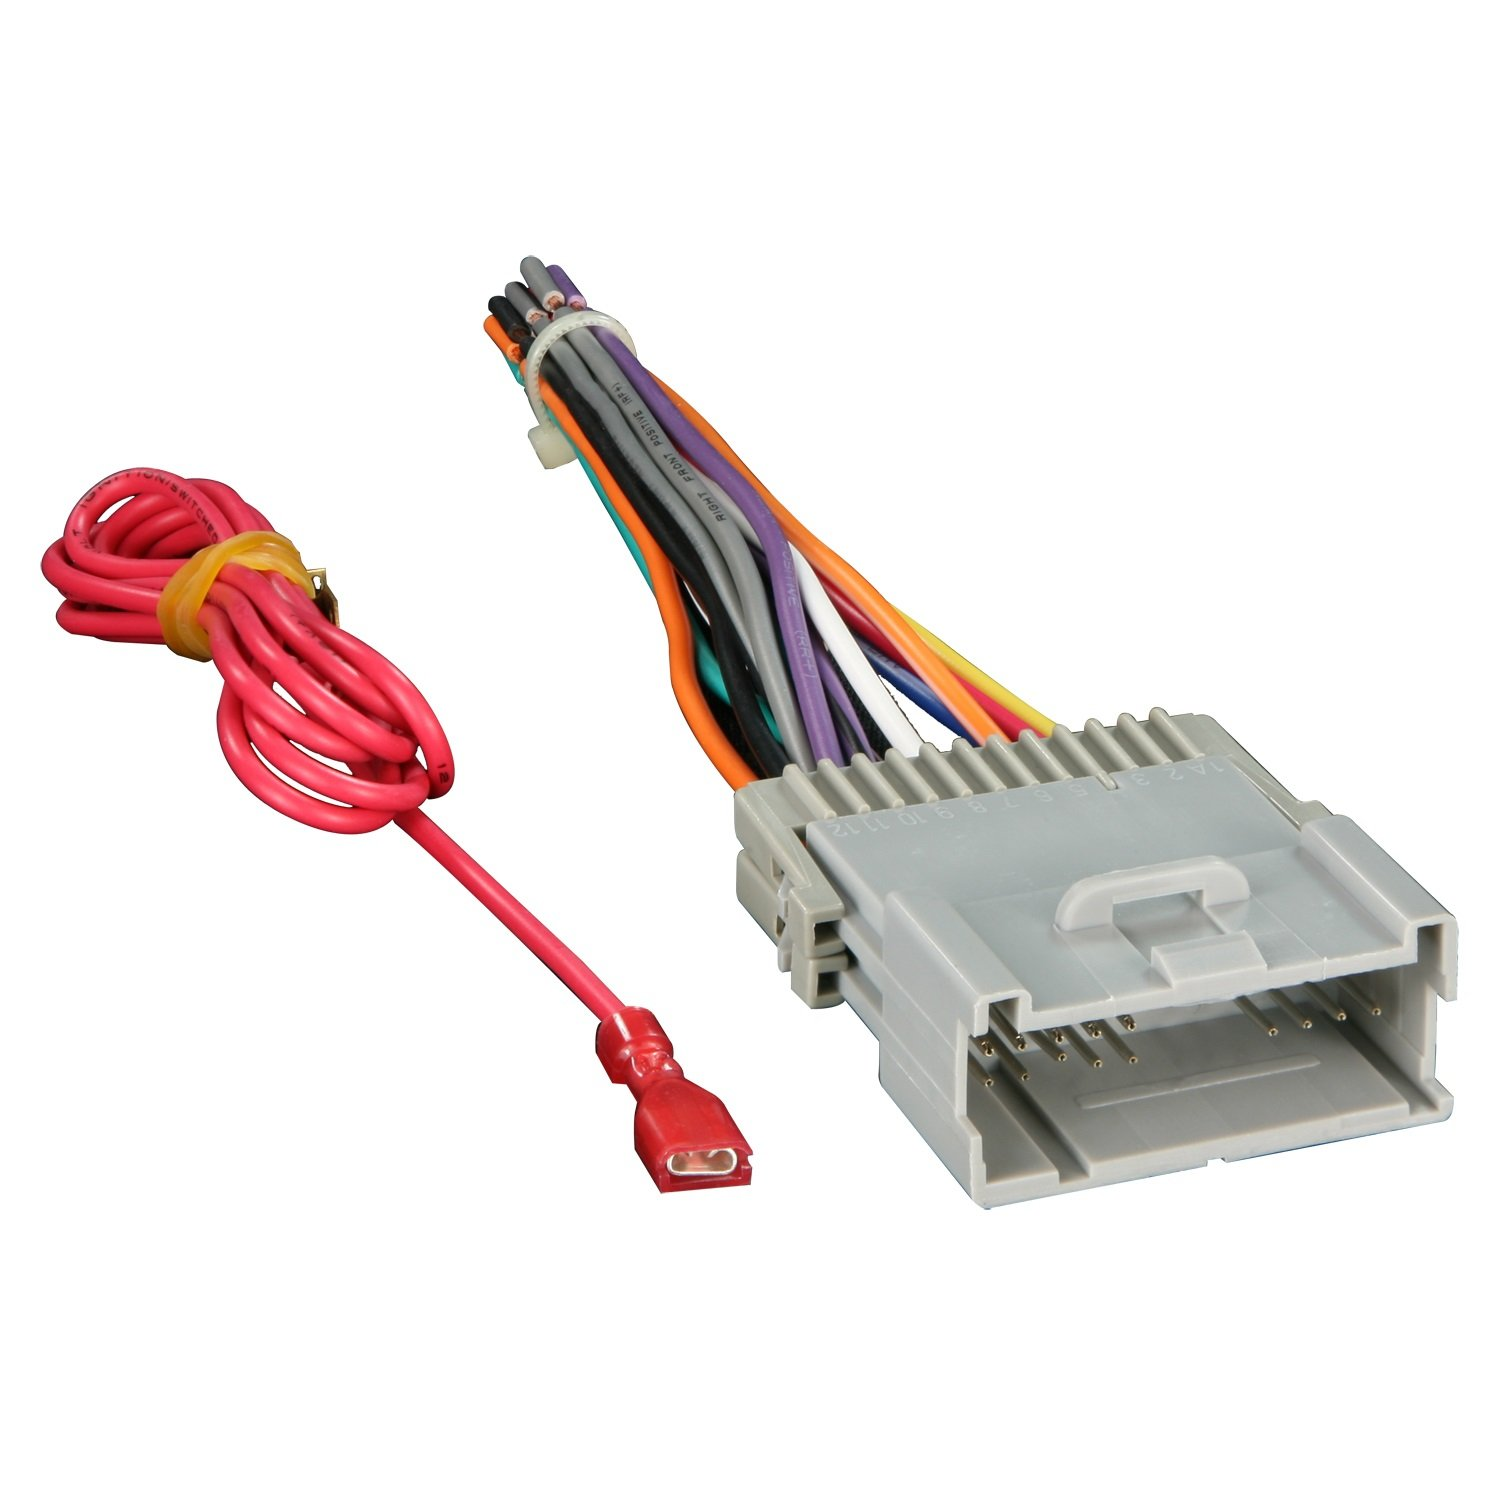 amazon com metra 70 2003 radio wiring harness for gm 98 08 harness rh amazon com gm wiring harness color code gm wiring harness recall